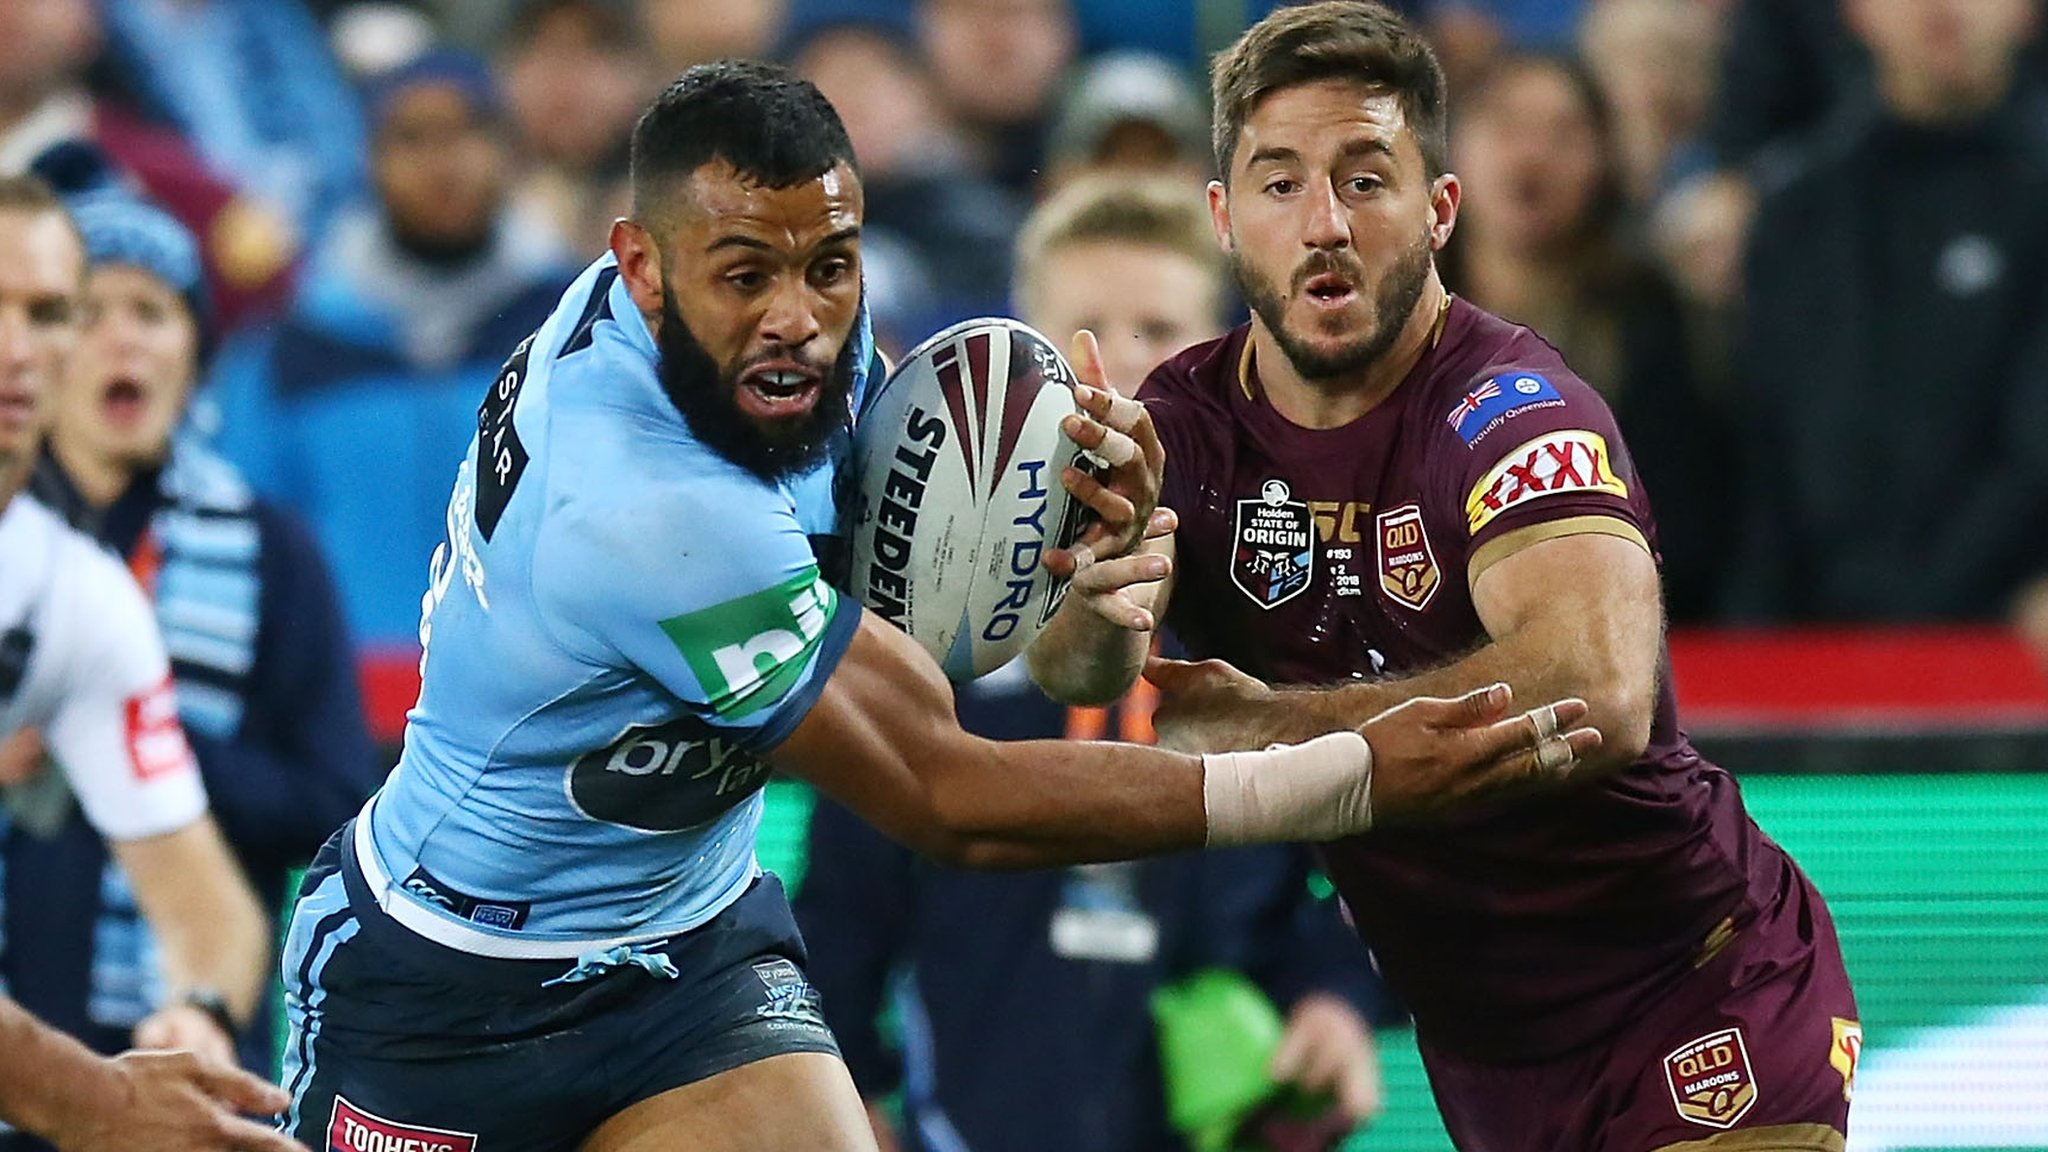 State of Origin: New South Wales claim title with 18-14 win over Queensland